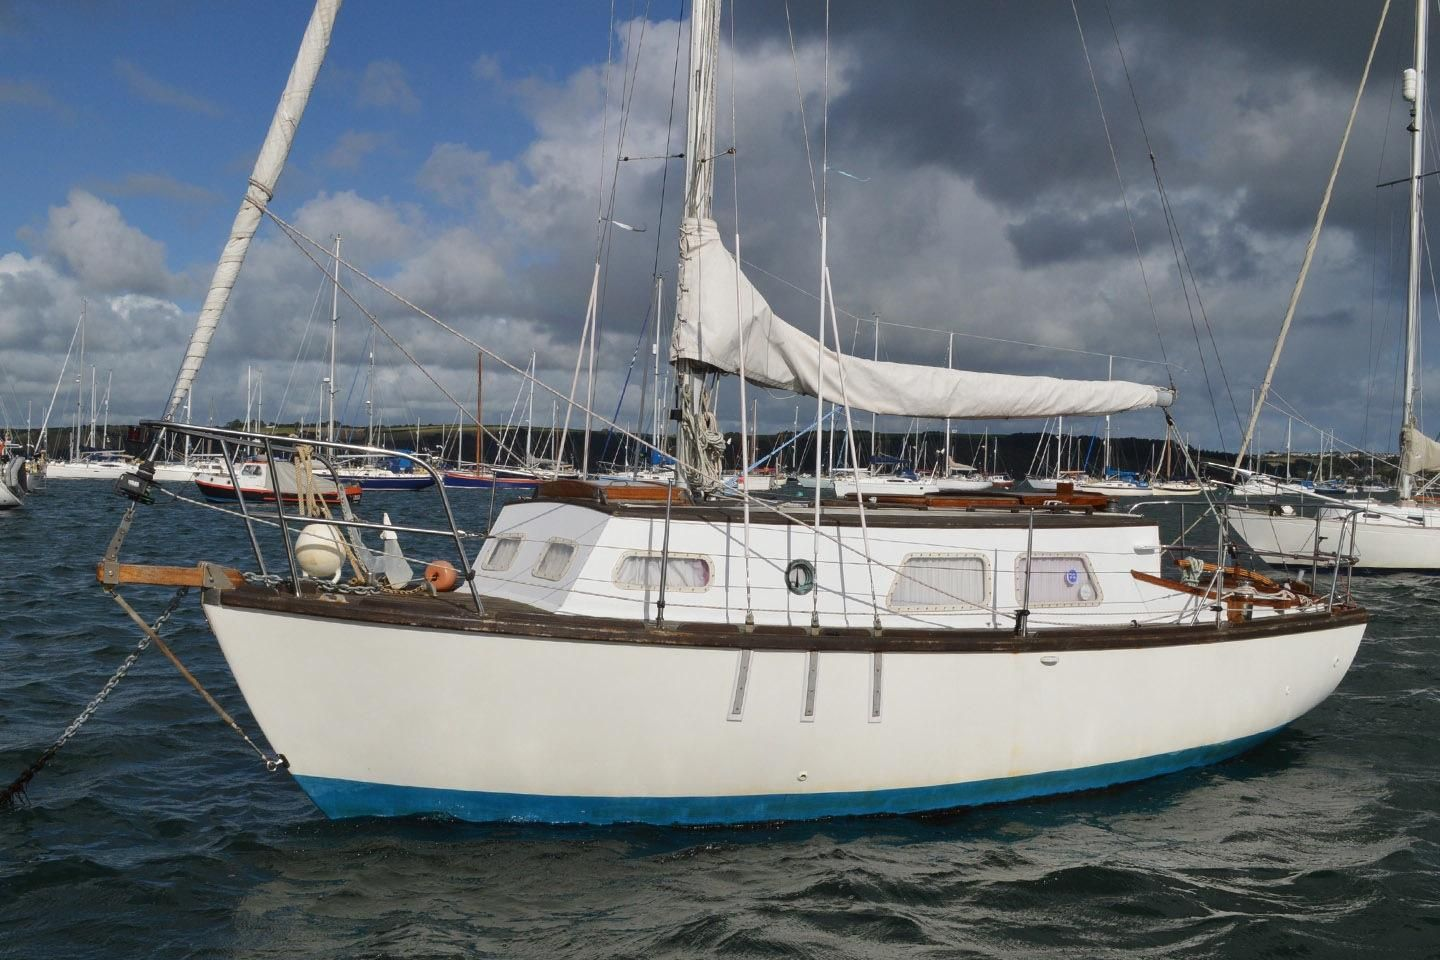 Boats for sale uk